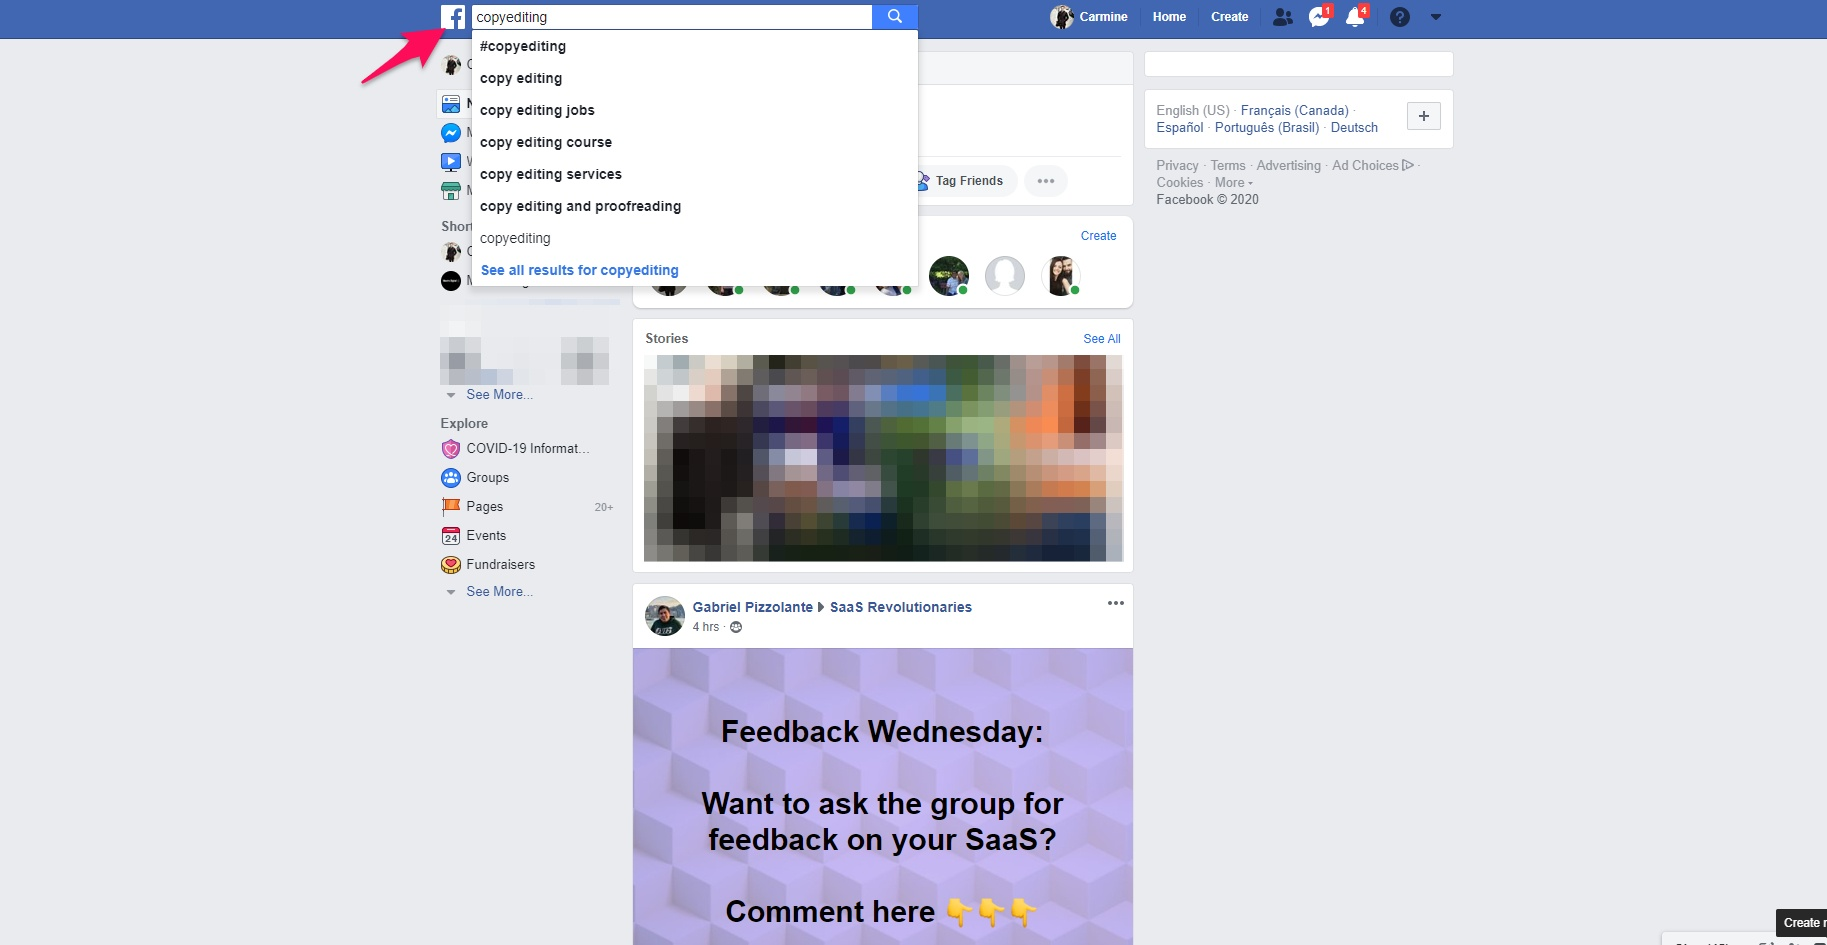 Searching for copyediting FB groups